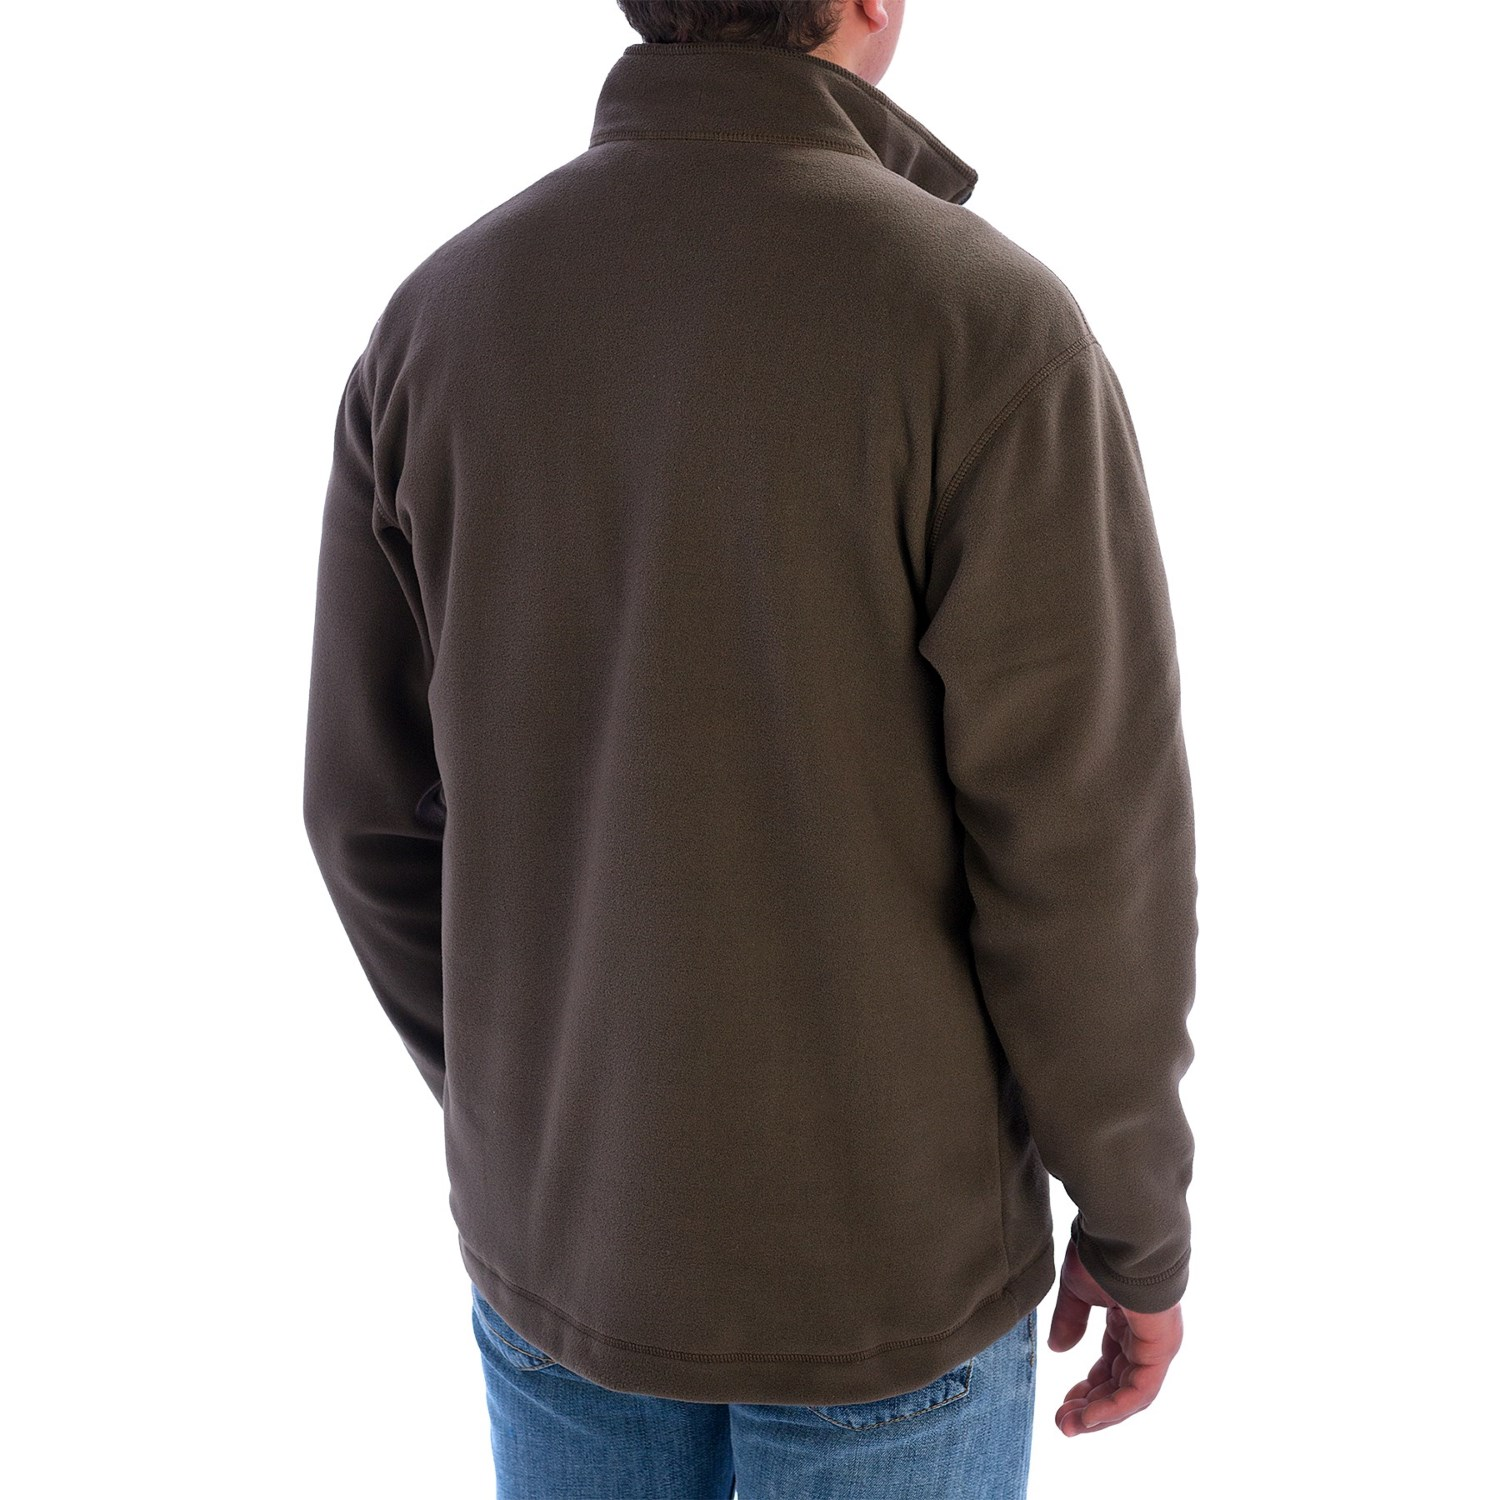 Pullover fleece shirt for men 7844x save 78 for Mens long sleeve pullover shirts